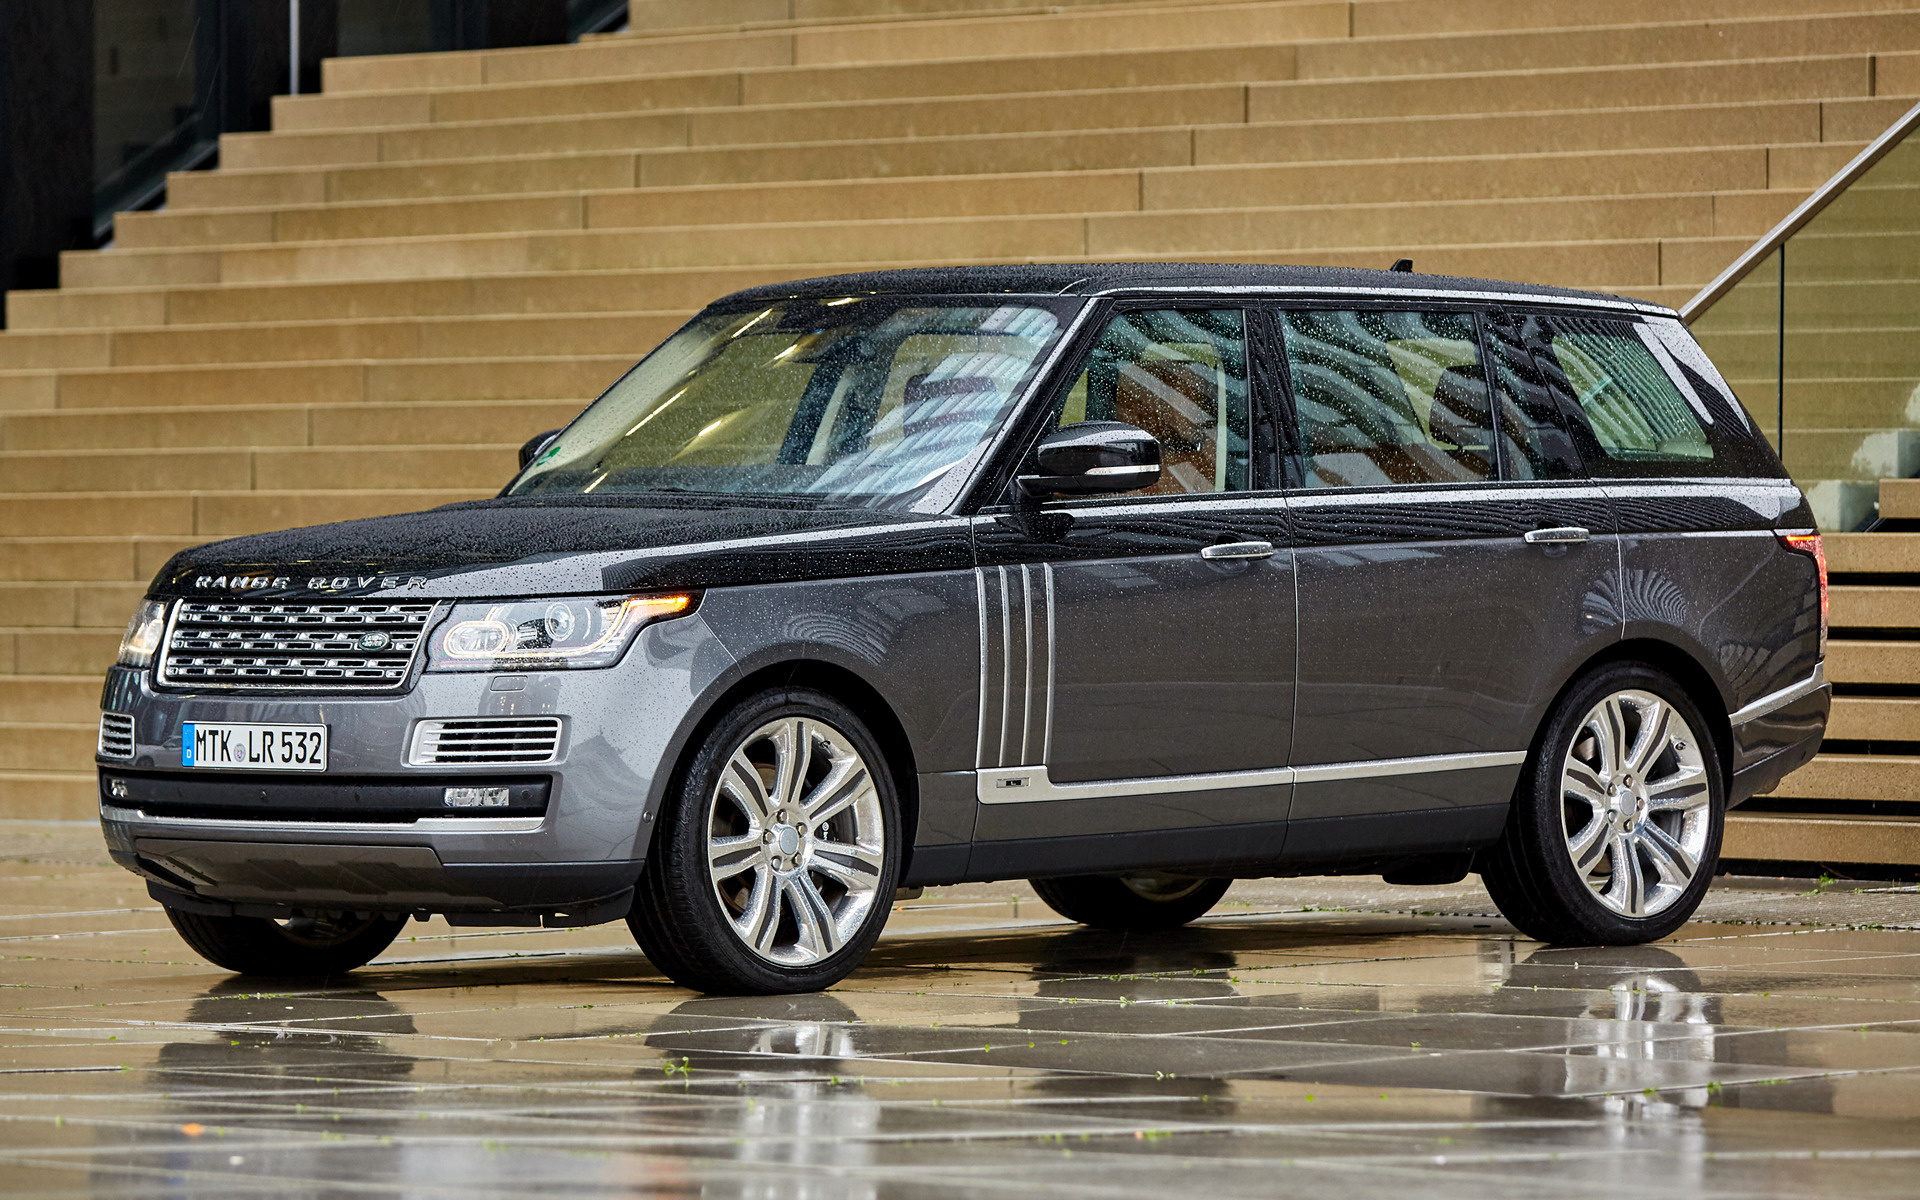 2015 Range Rover Svautobiography Lwb Wallpapers And Hd